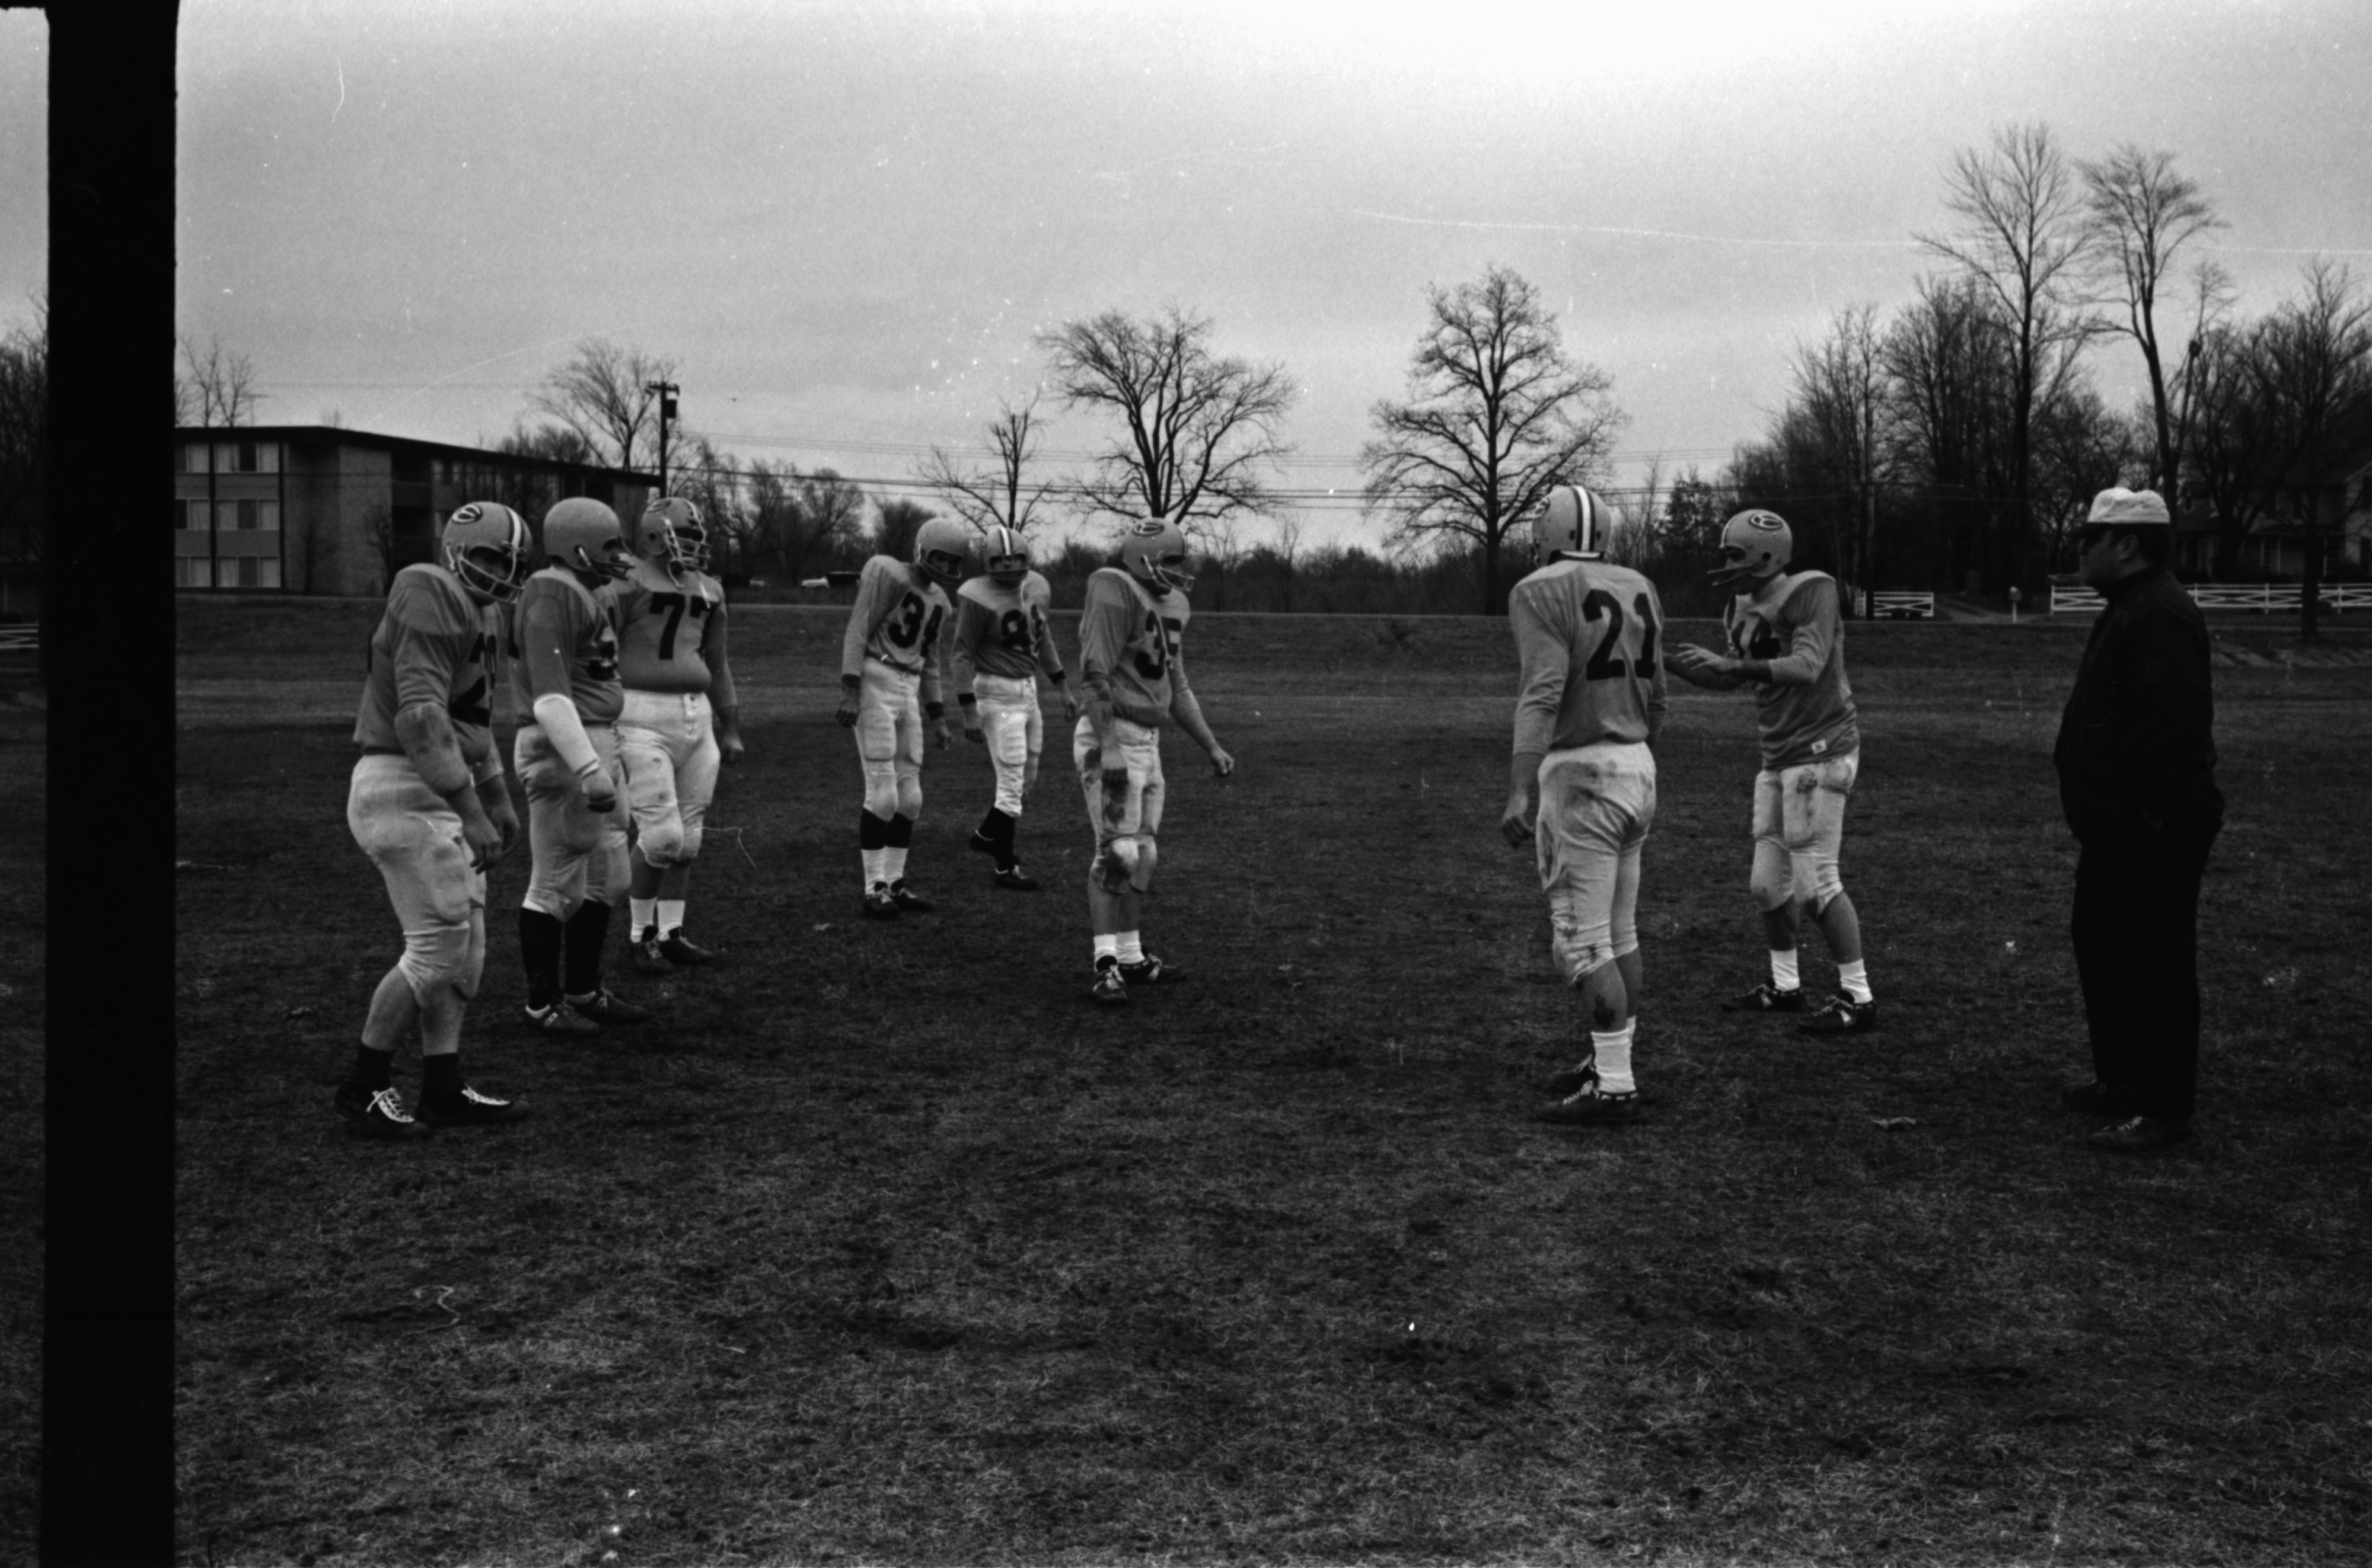 Sheriff Douglas J. Harvey and Pigs Football Practice, December 1969 image